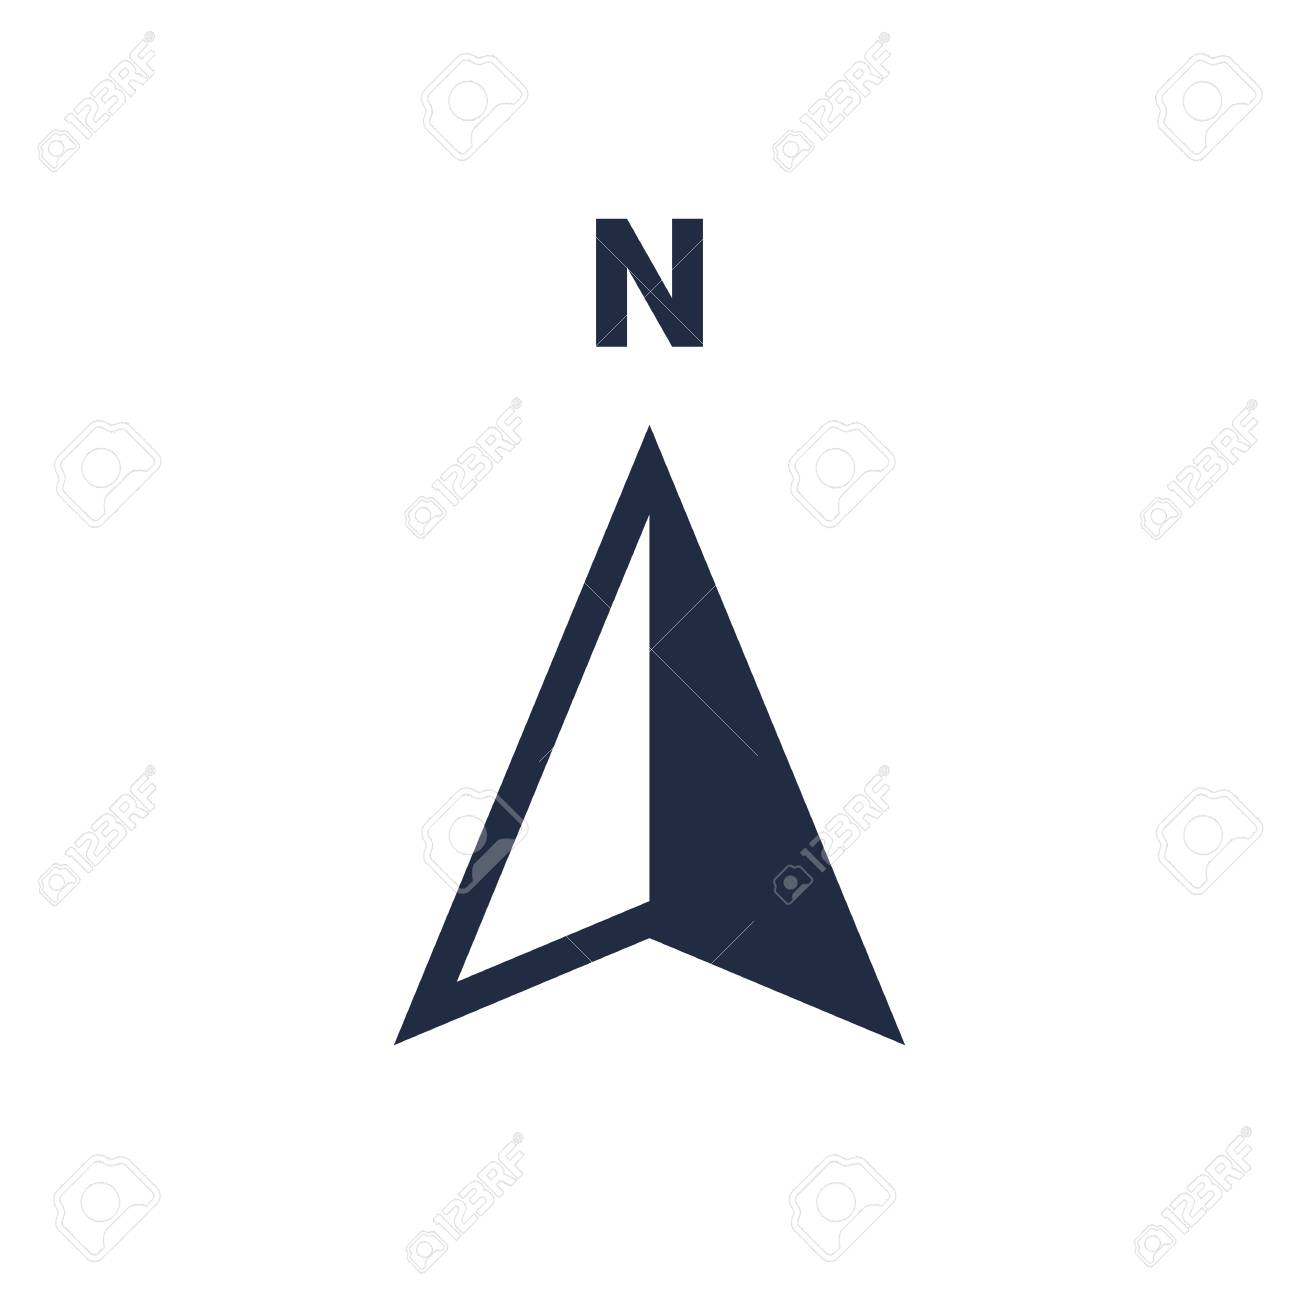 North arrow icon or N direction and navigation point symbol. Vector logo for GPS navigator map isolated on white background - 108090643